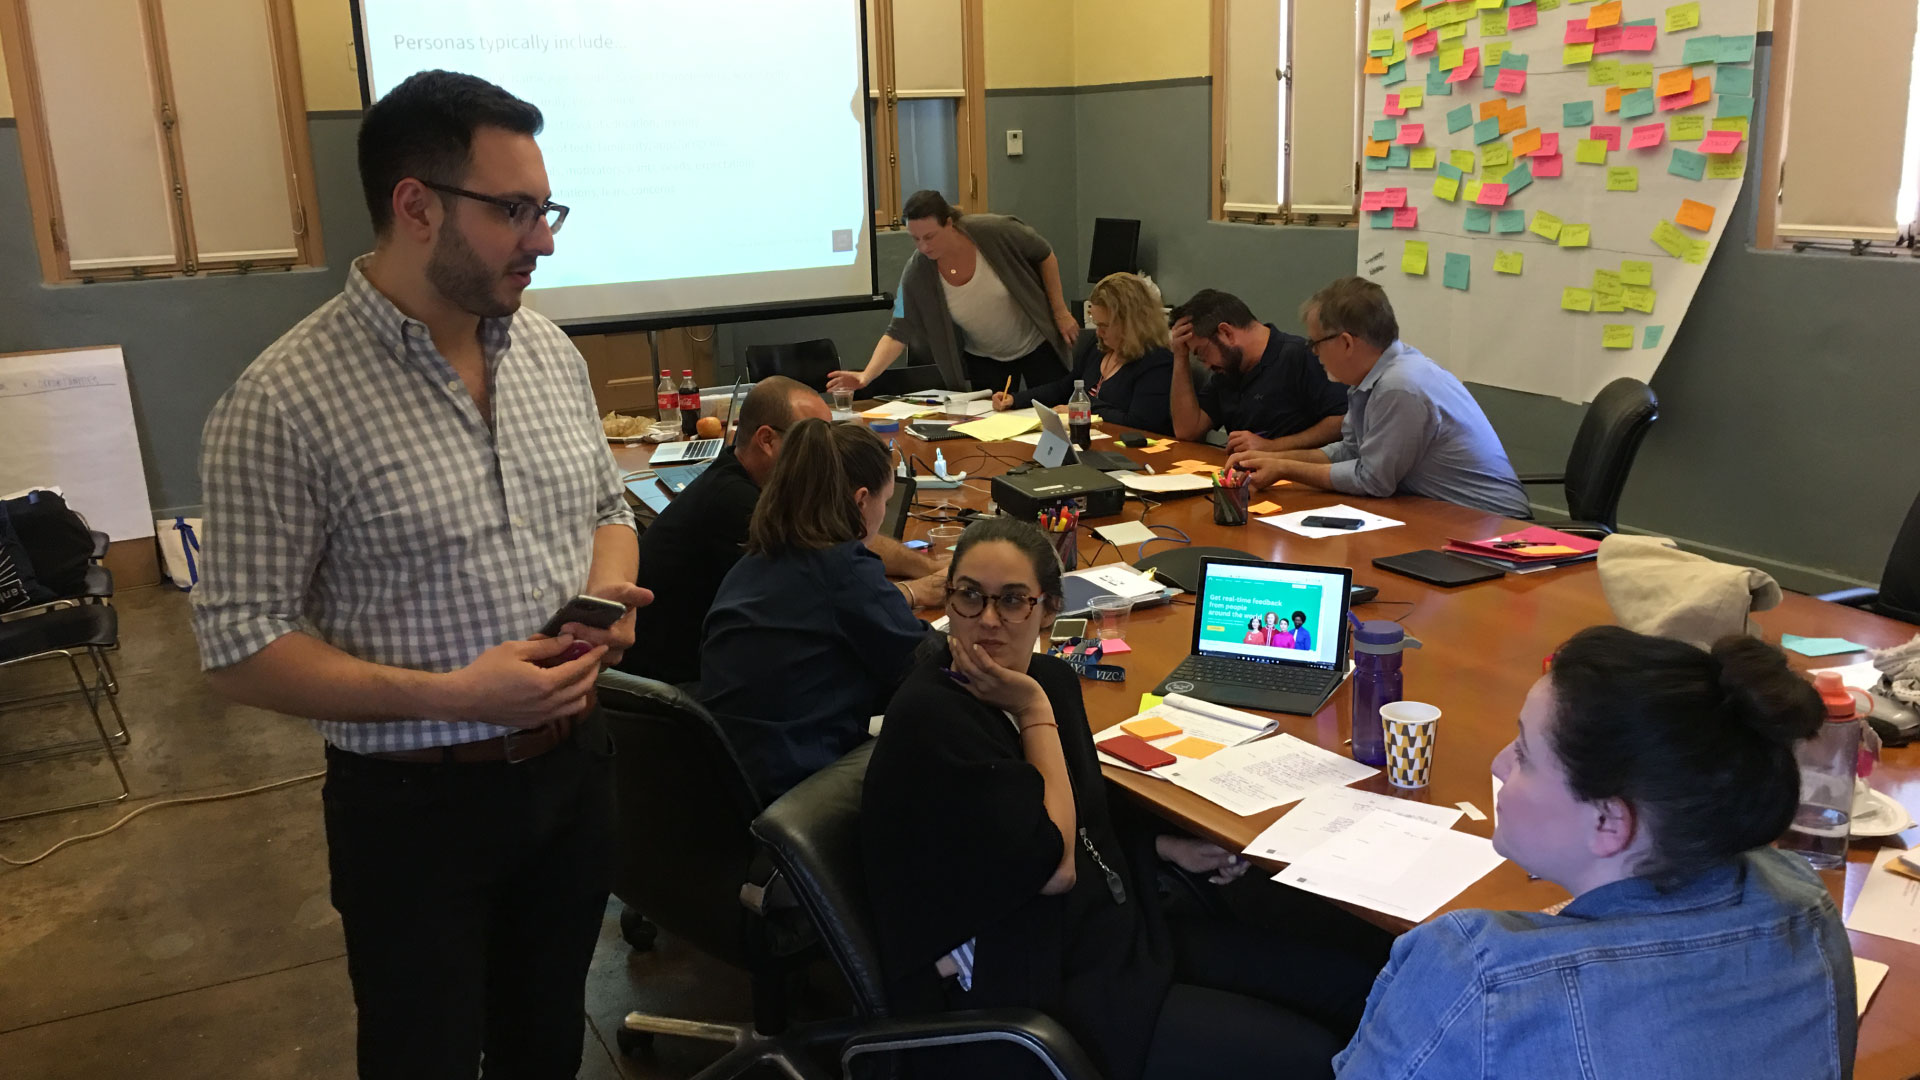 Michael Tedeschi facilitating a design thinking workshop with participants around a table with sticky notes in the background.